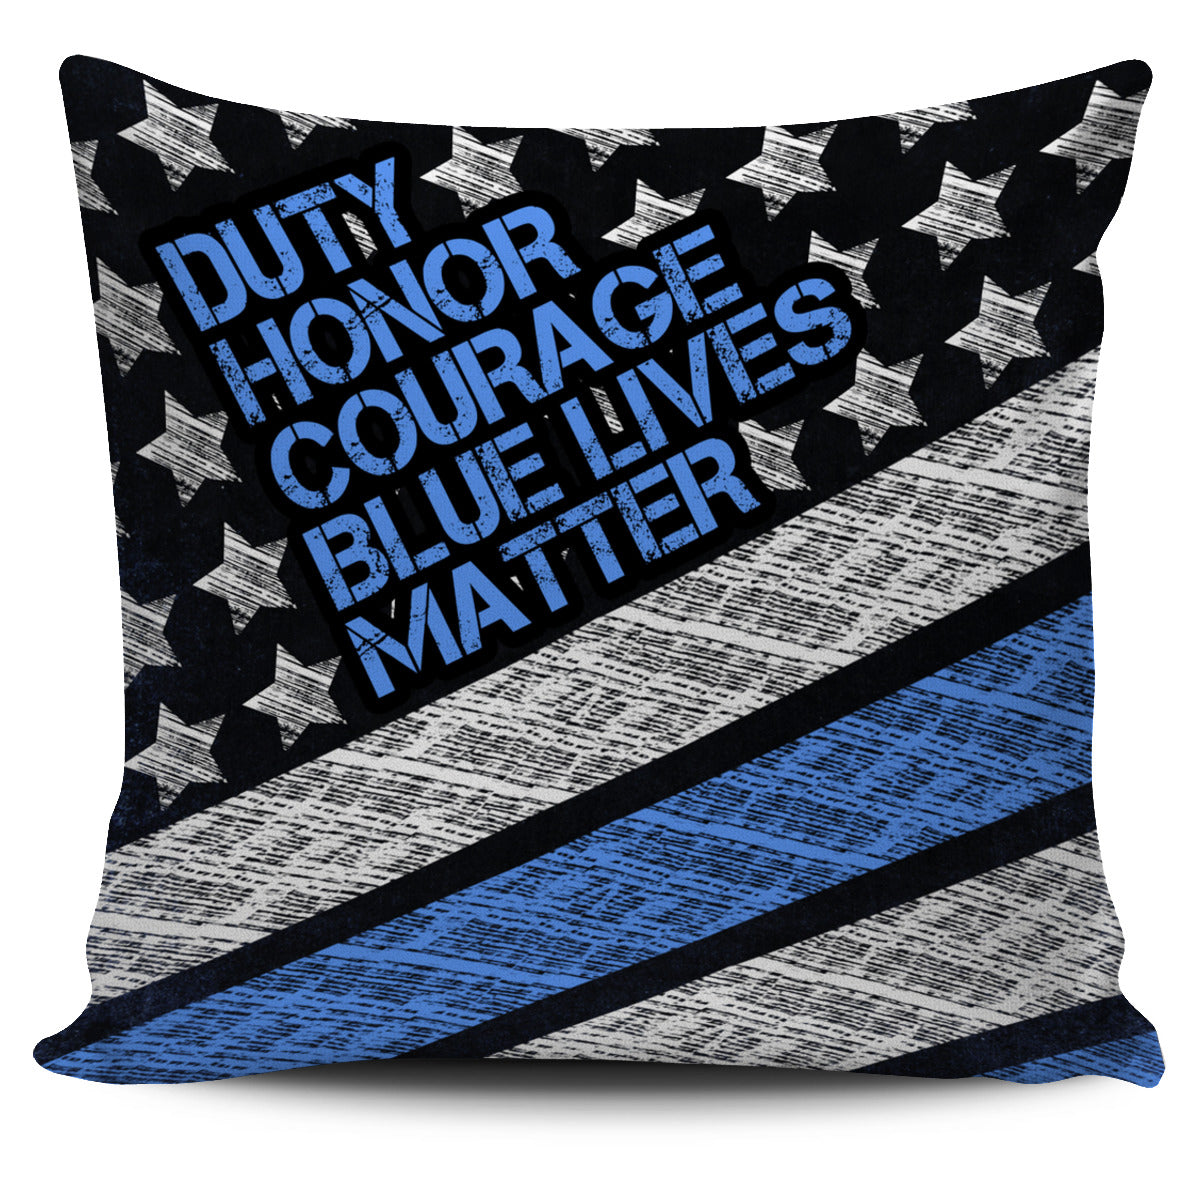 Blue Lives Matter Pillow Cover